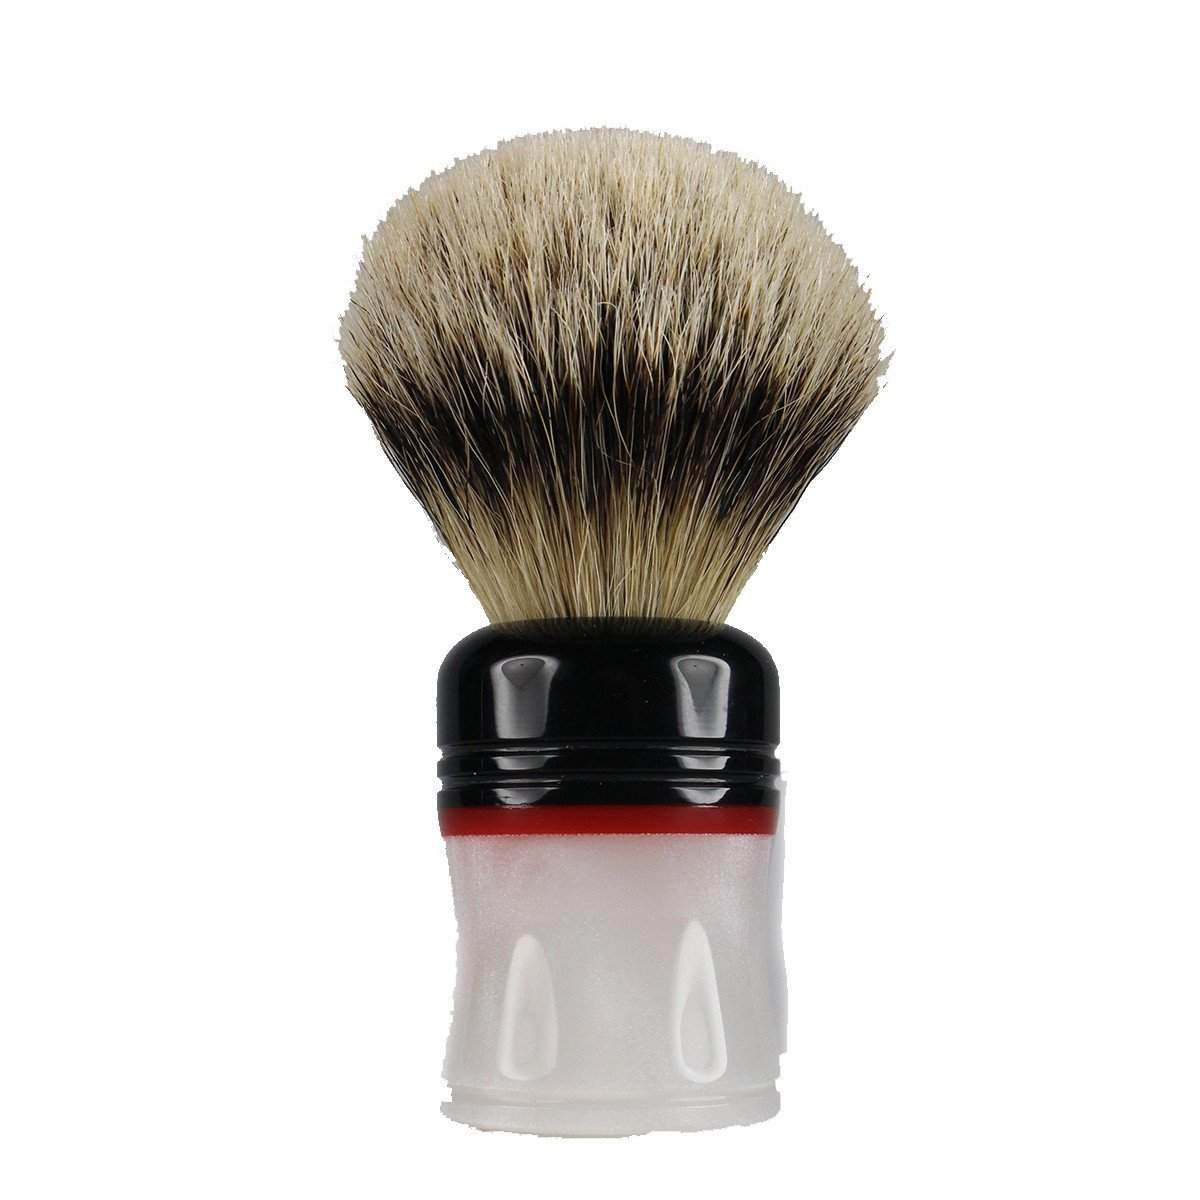 Leitch Hand Turned Acrylic Handle (Black, Red and Faux MOP) Shaving Br